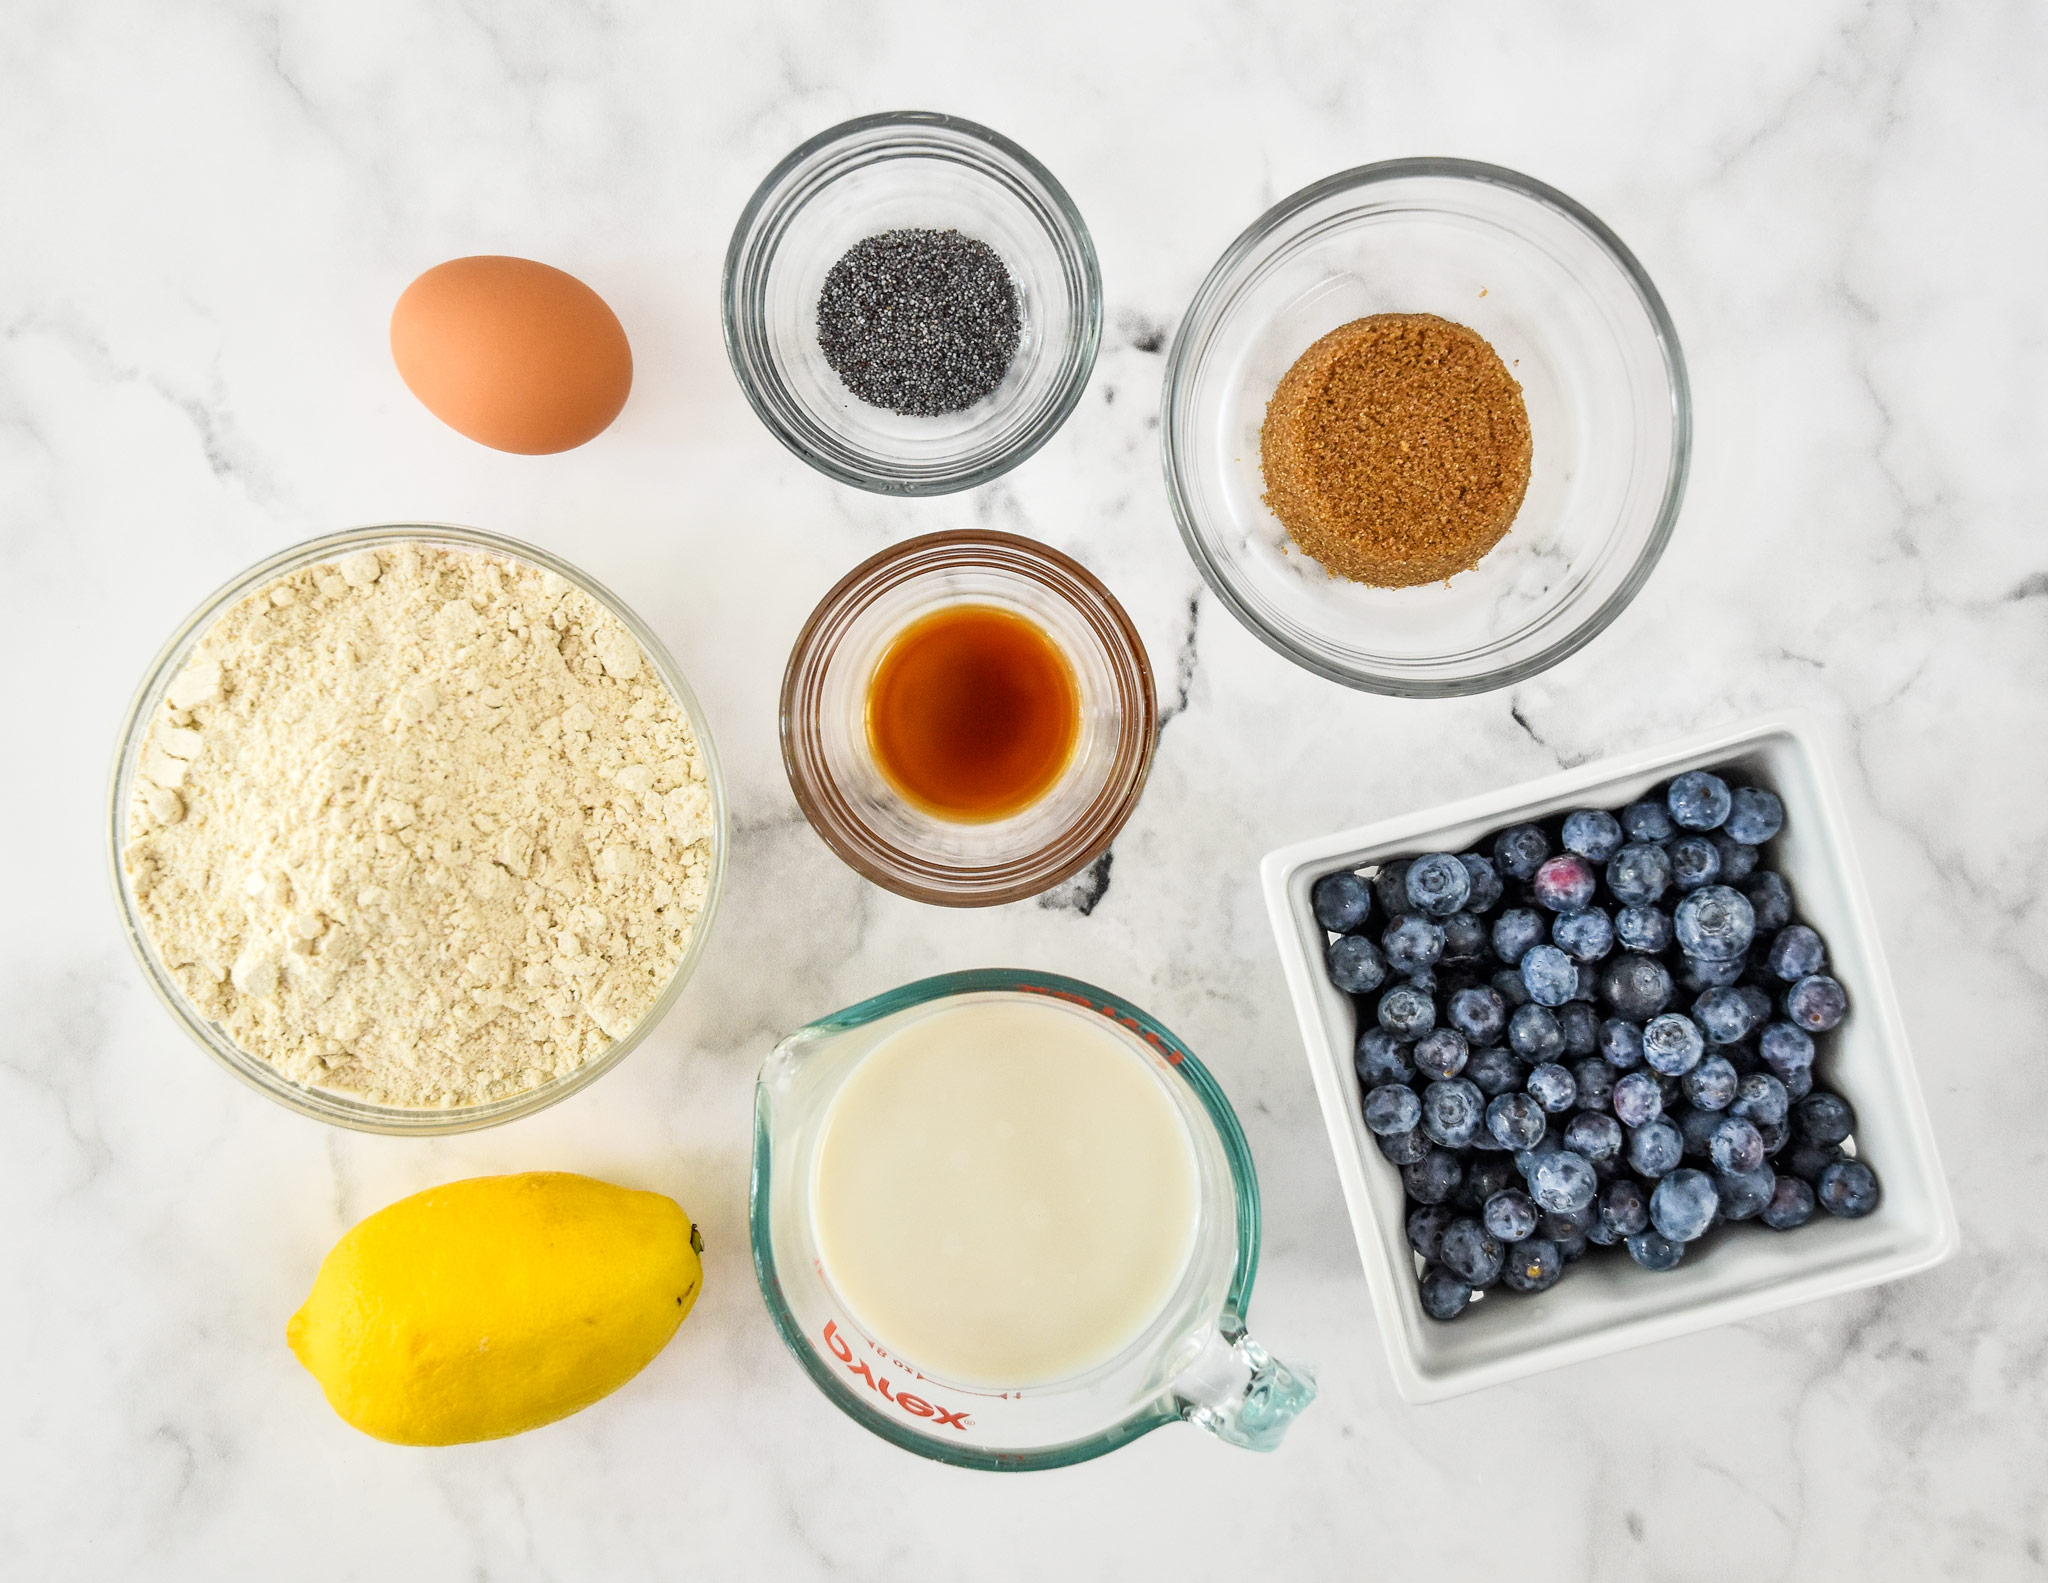 ingredients in the blueberry lemon pancake mix muffins in separate bowls.